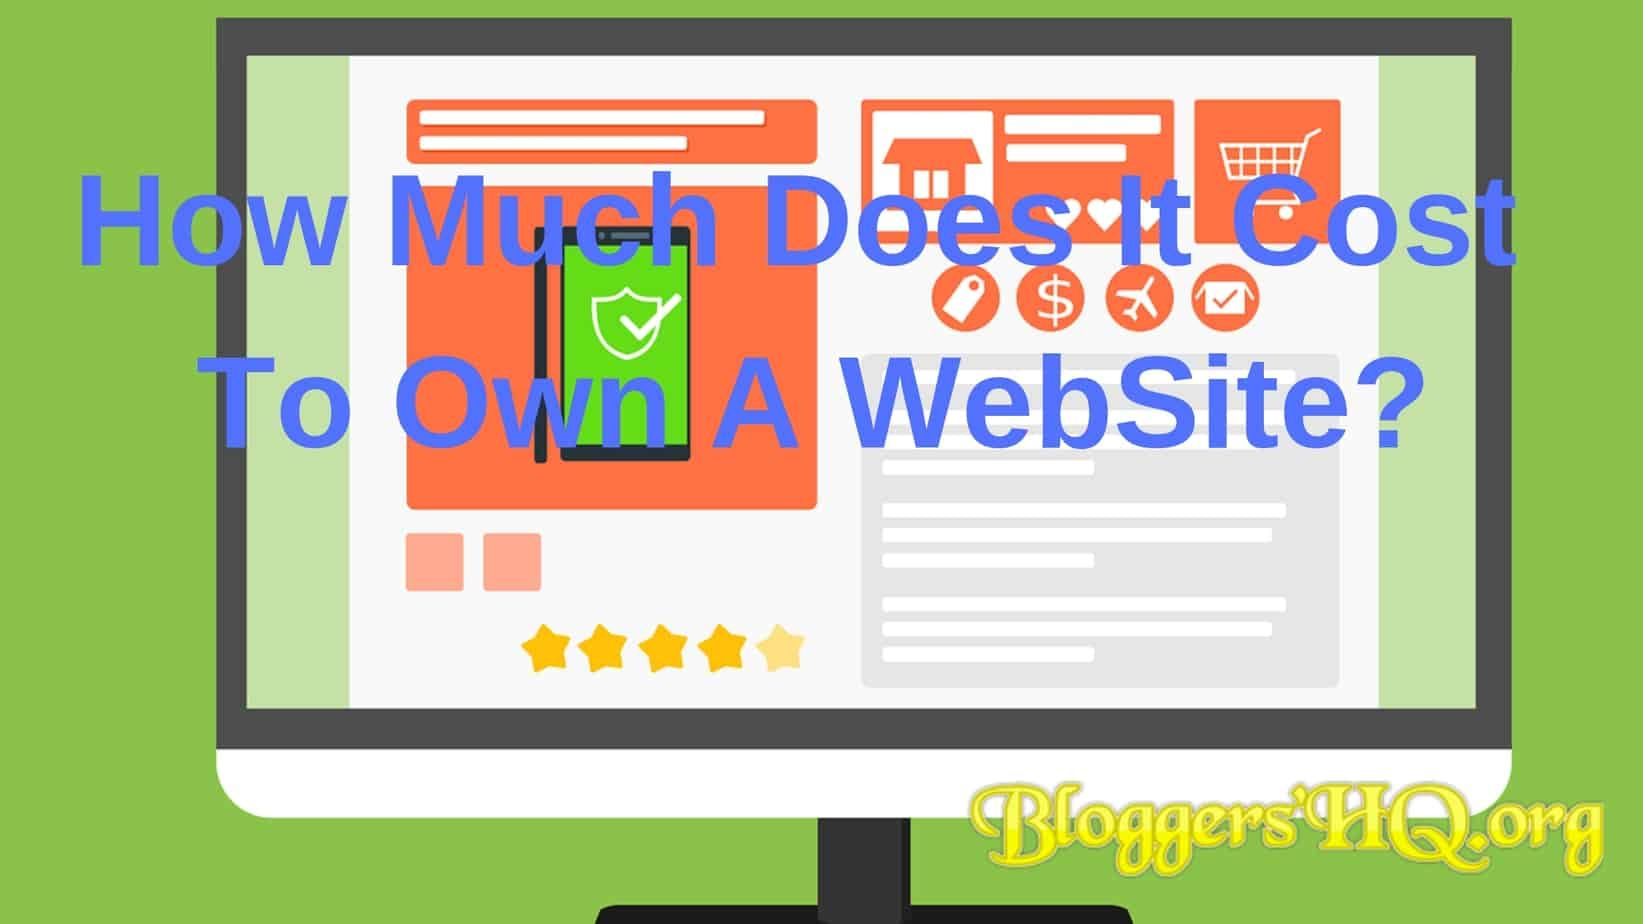 How Much Does It Cost To Own A Website? Full Website Cost